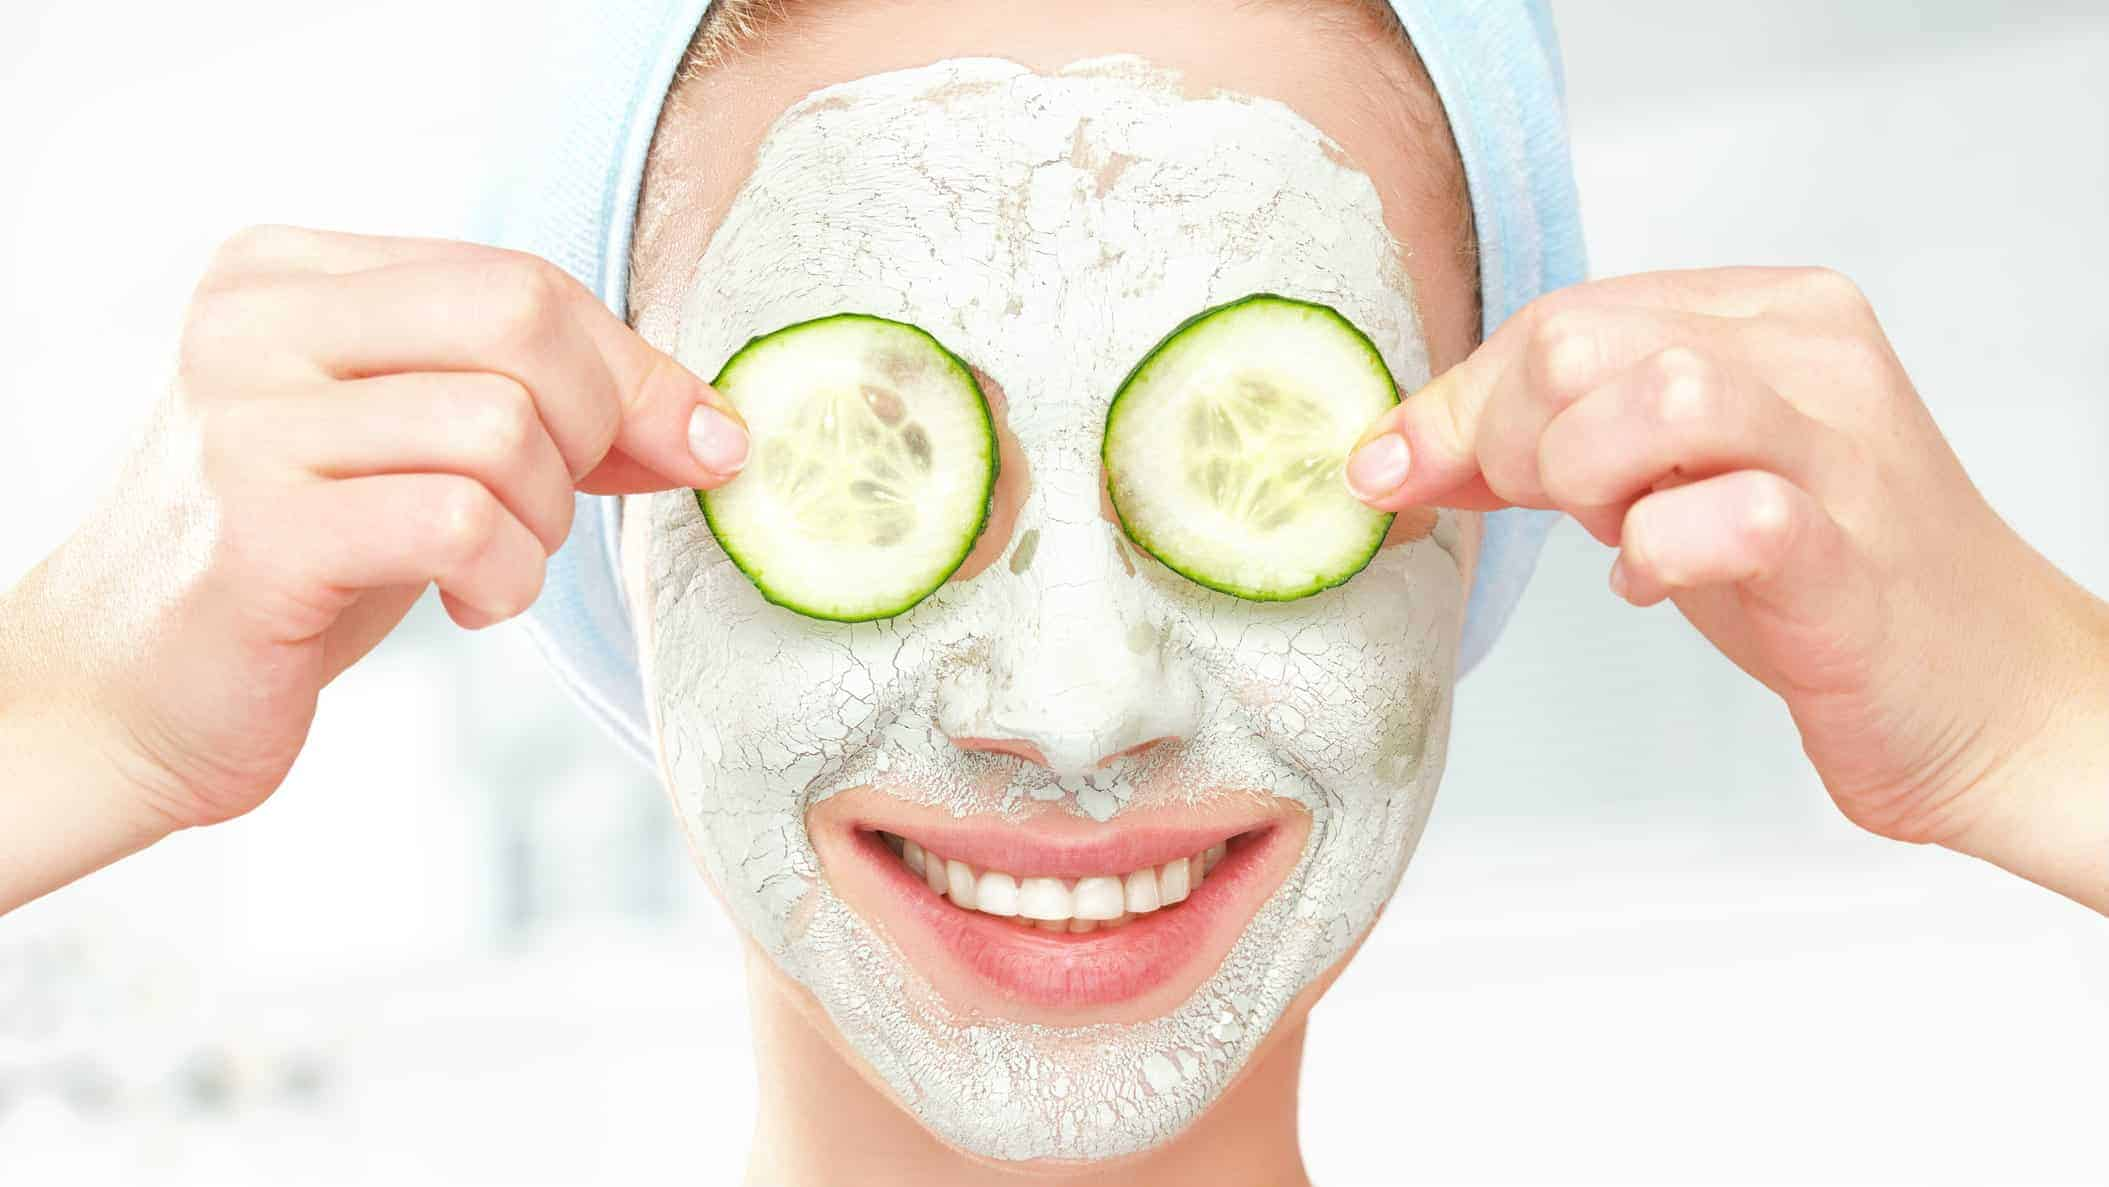 skin care asx share price represented by happy woman holding cucumbers over eyes